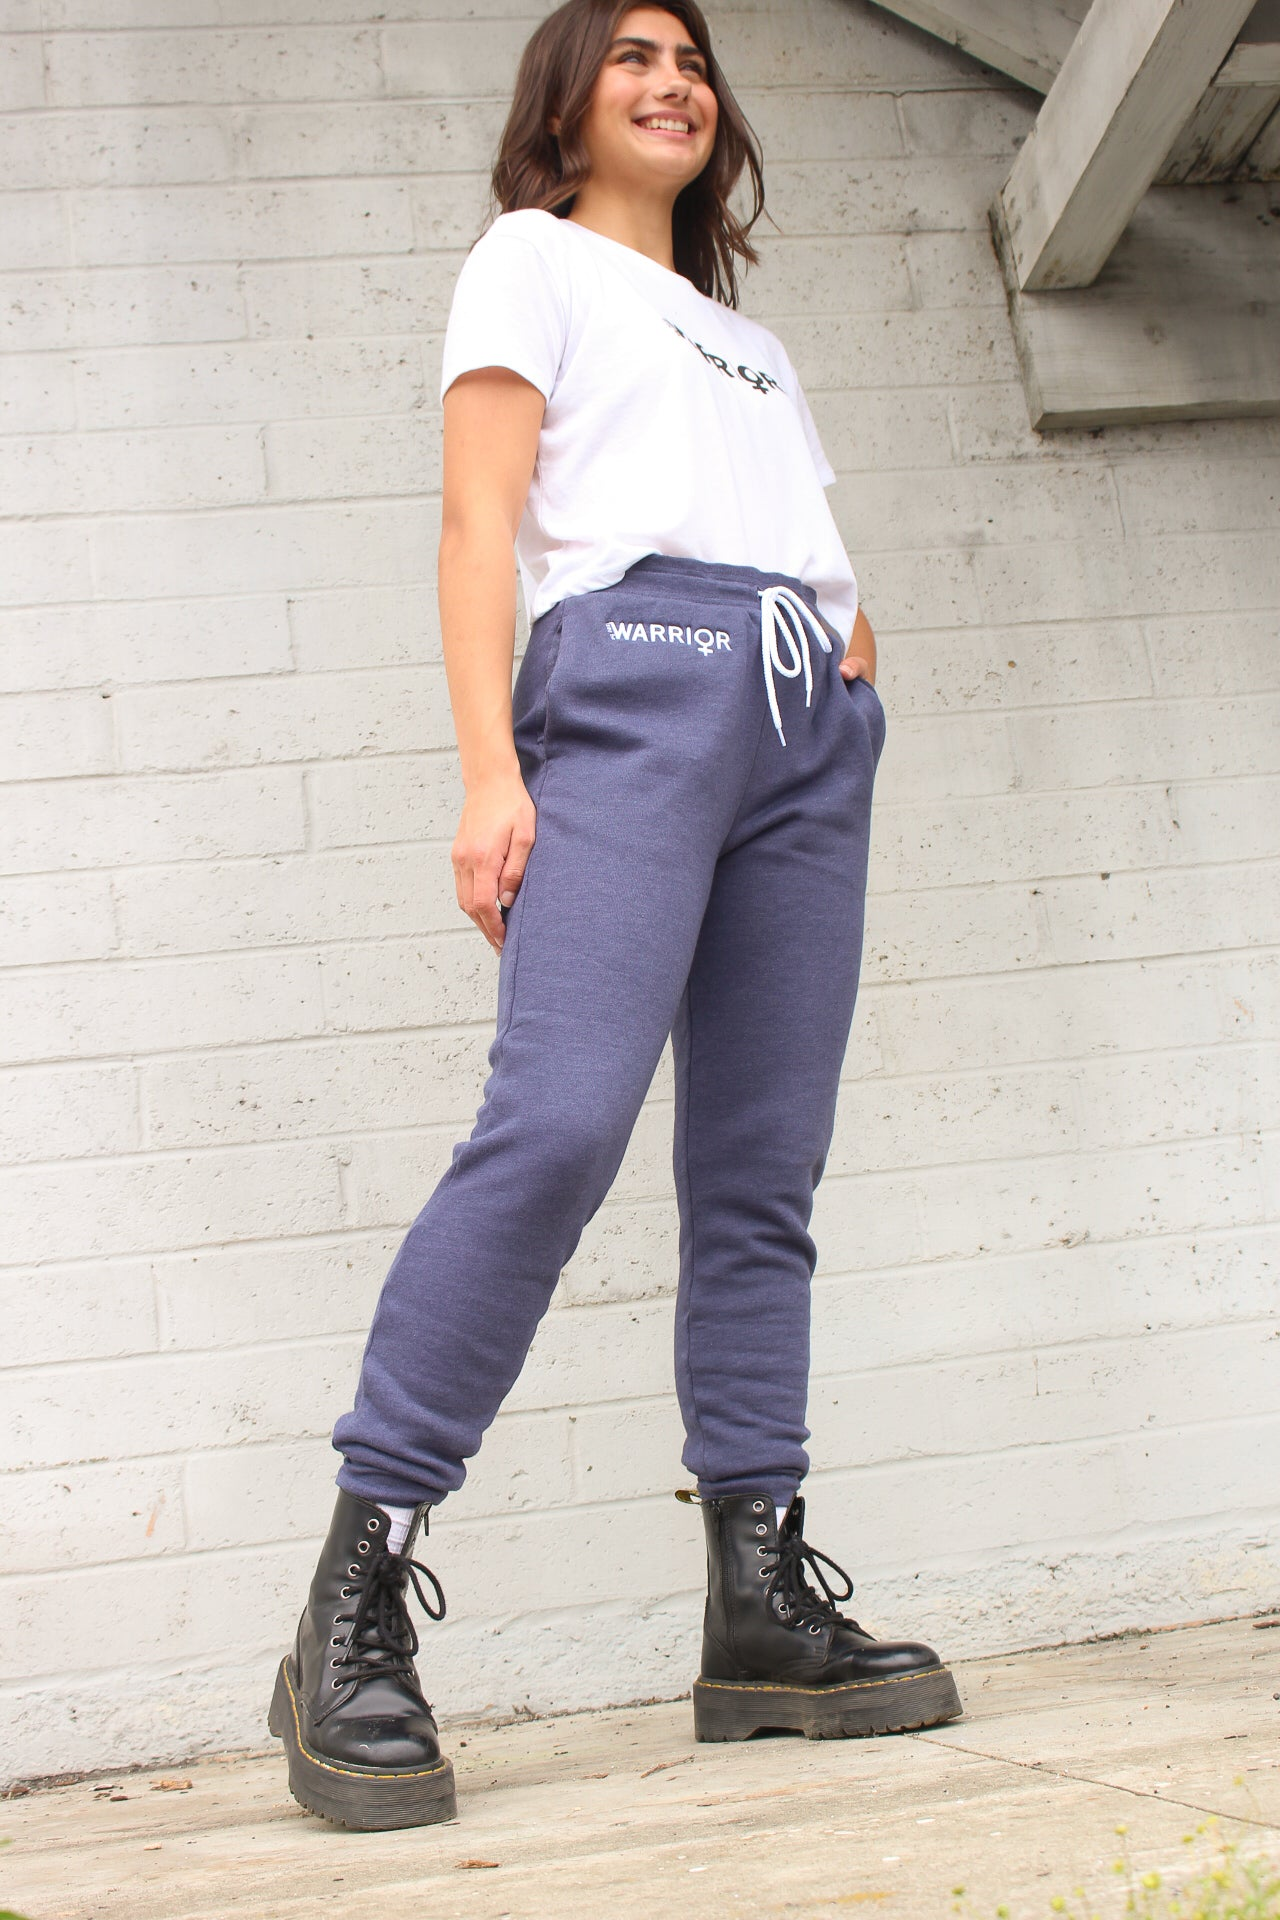 Warrior Navy Embroidered Sweatpants